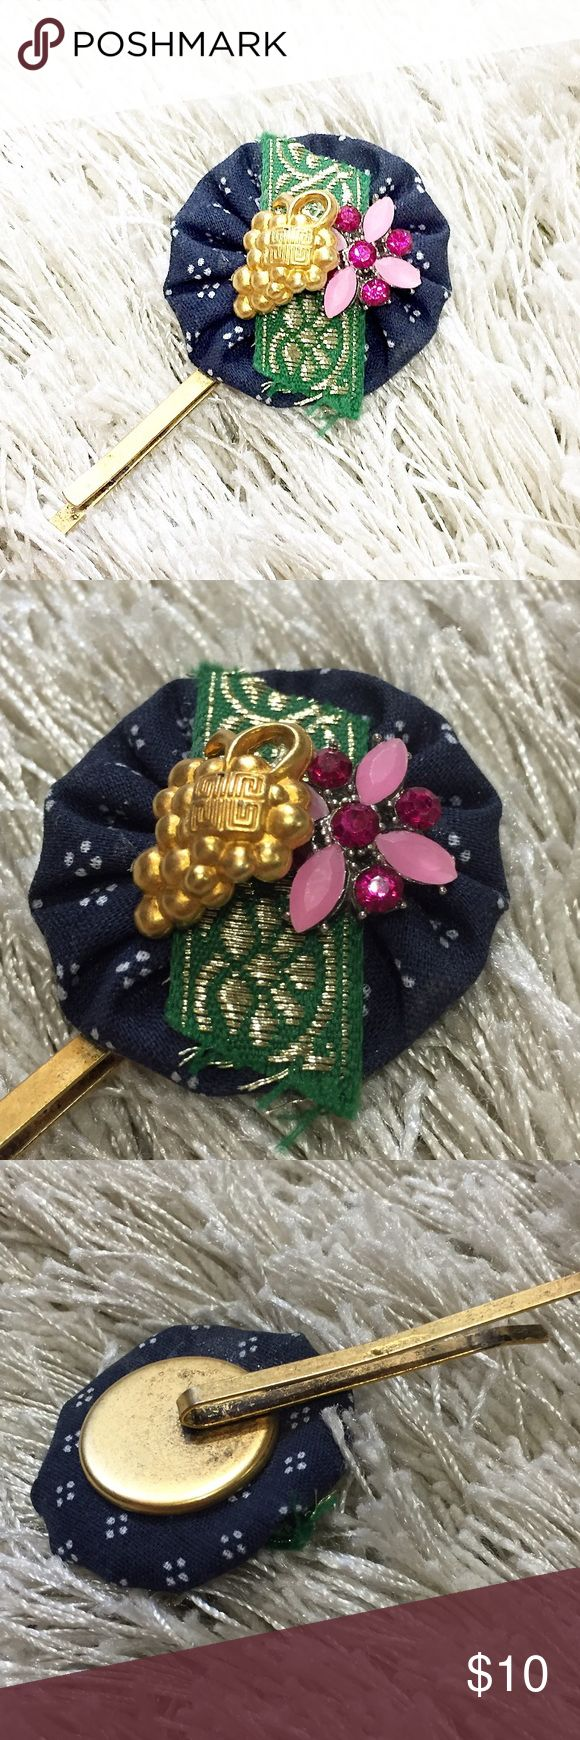 Decorative Hair Pin • Anthropologie Decorative hair pin from Anthropologie. Beautiful statement piece. Feel free to ask questions! 💖 Anthropologie Accessories Hair Accessories